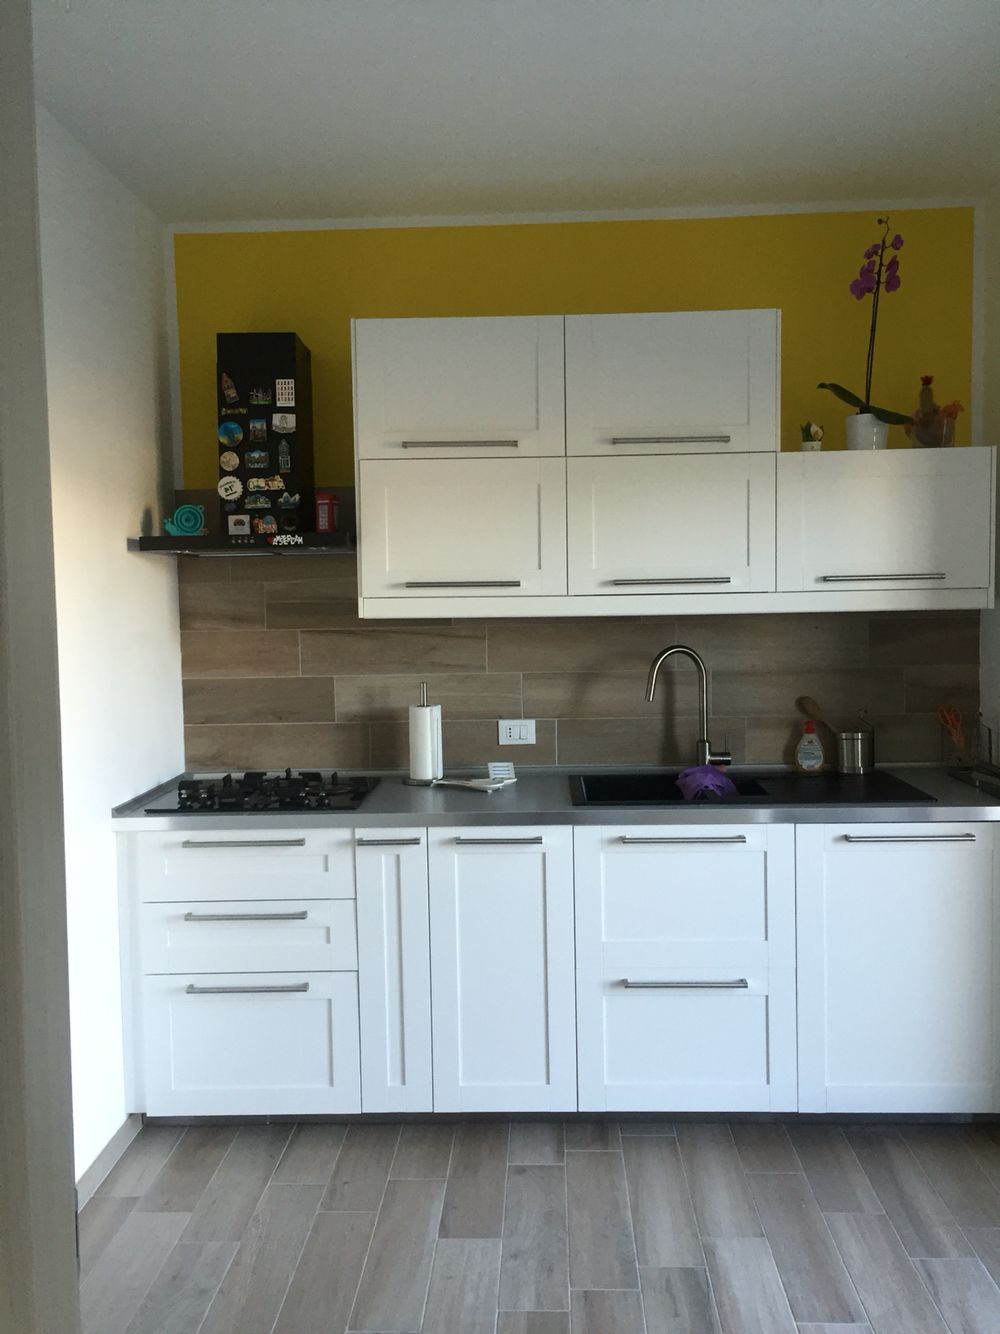 Kuchnia Voxtorp Ikea Ile Ilgili G Rsel Sonucu Ev Pinterest Kitchens Dark Tile Floors And